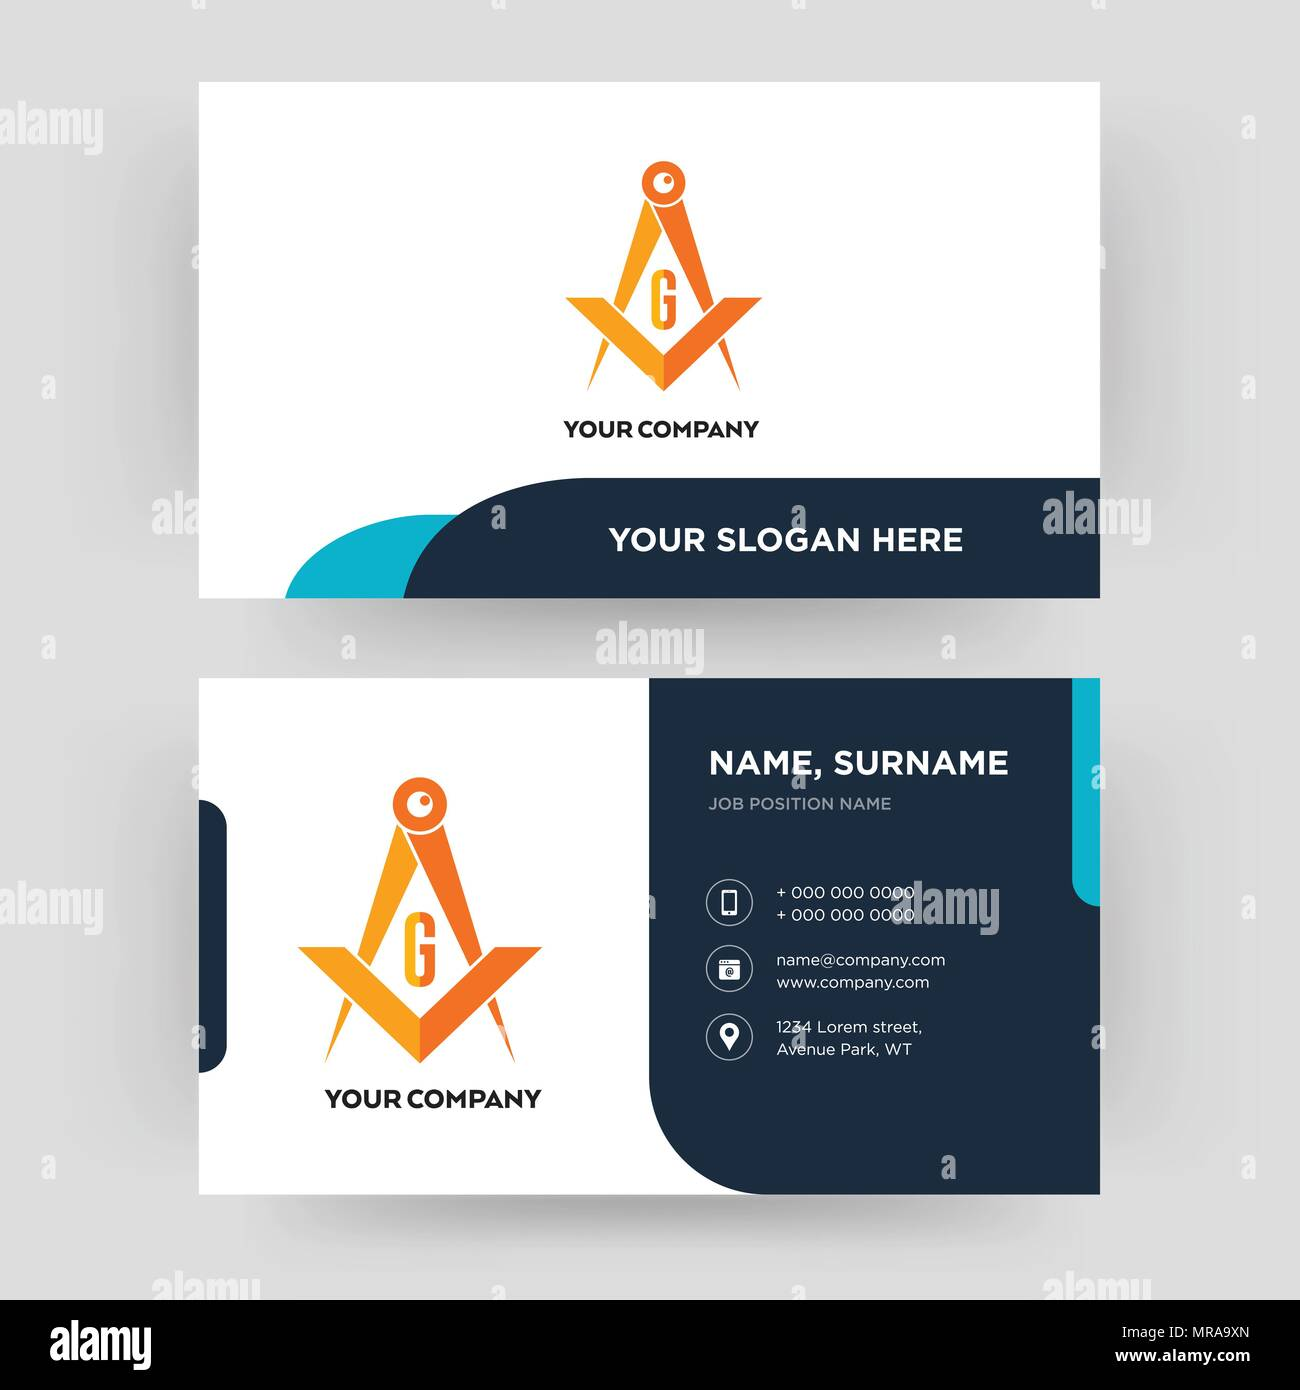 masonic, business card design template, Visiting for your company ...